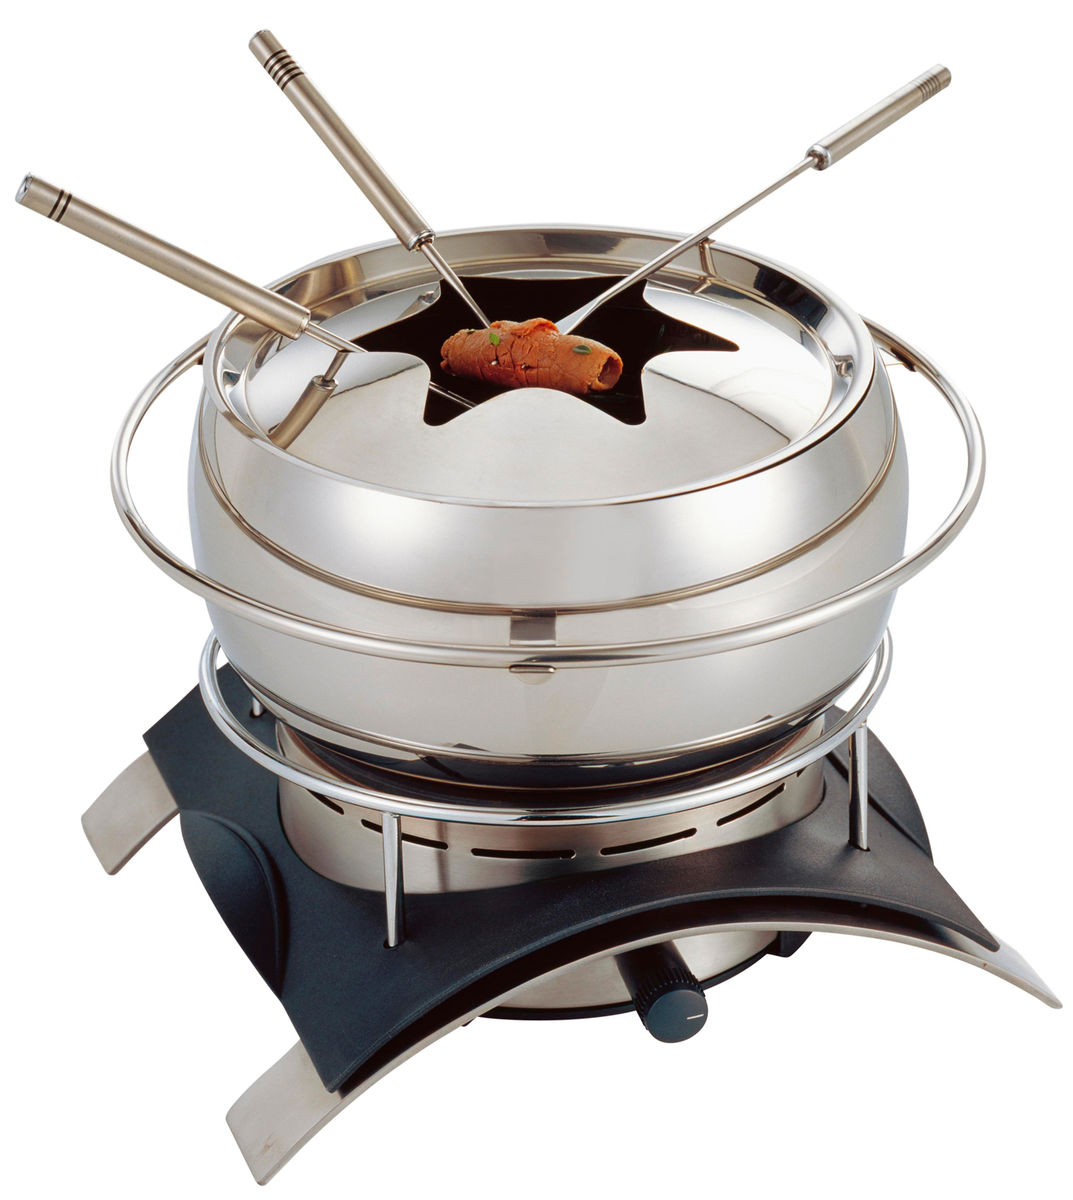 Image of Novis Fondue Set Inox